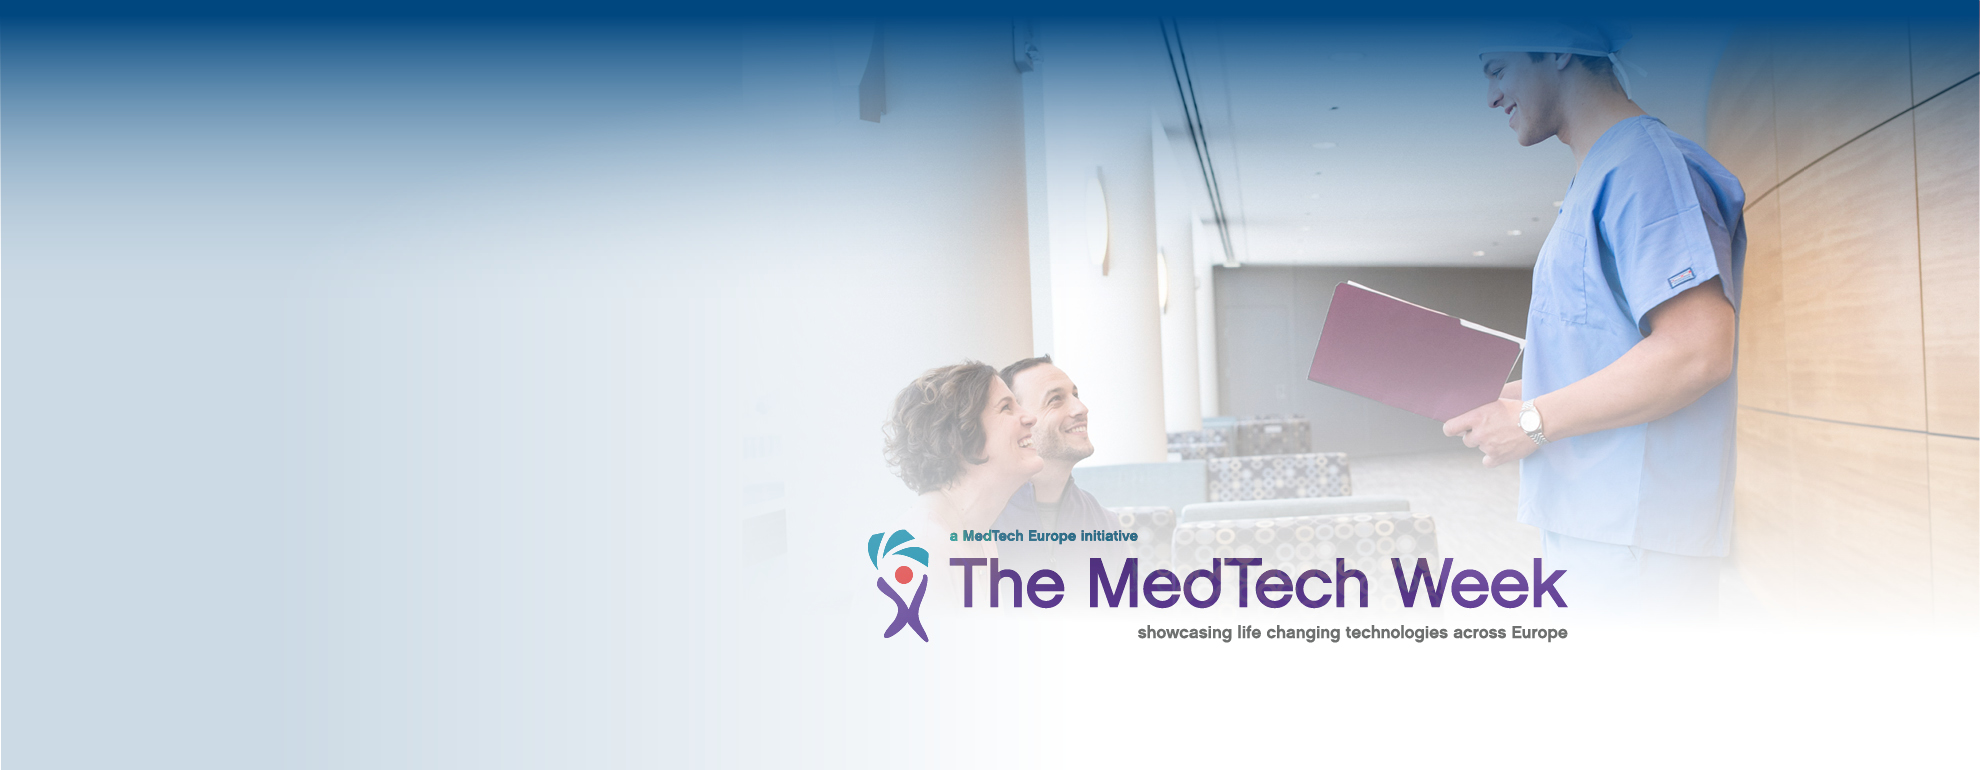 Advancing Science for Life. The MedTech Week. 4-8 June